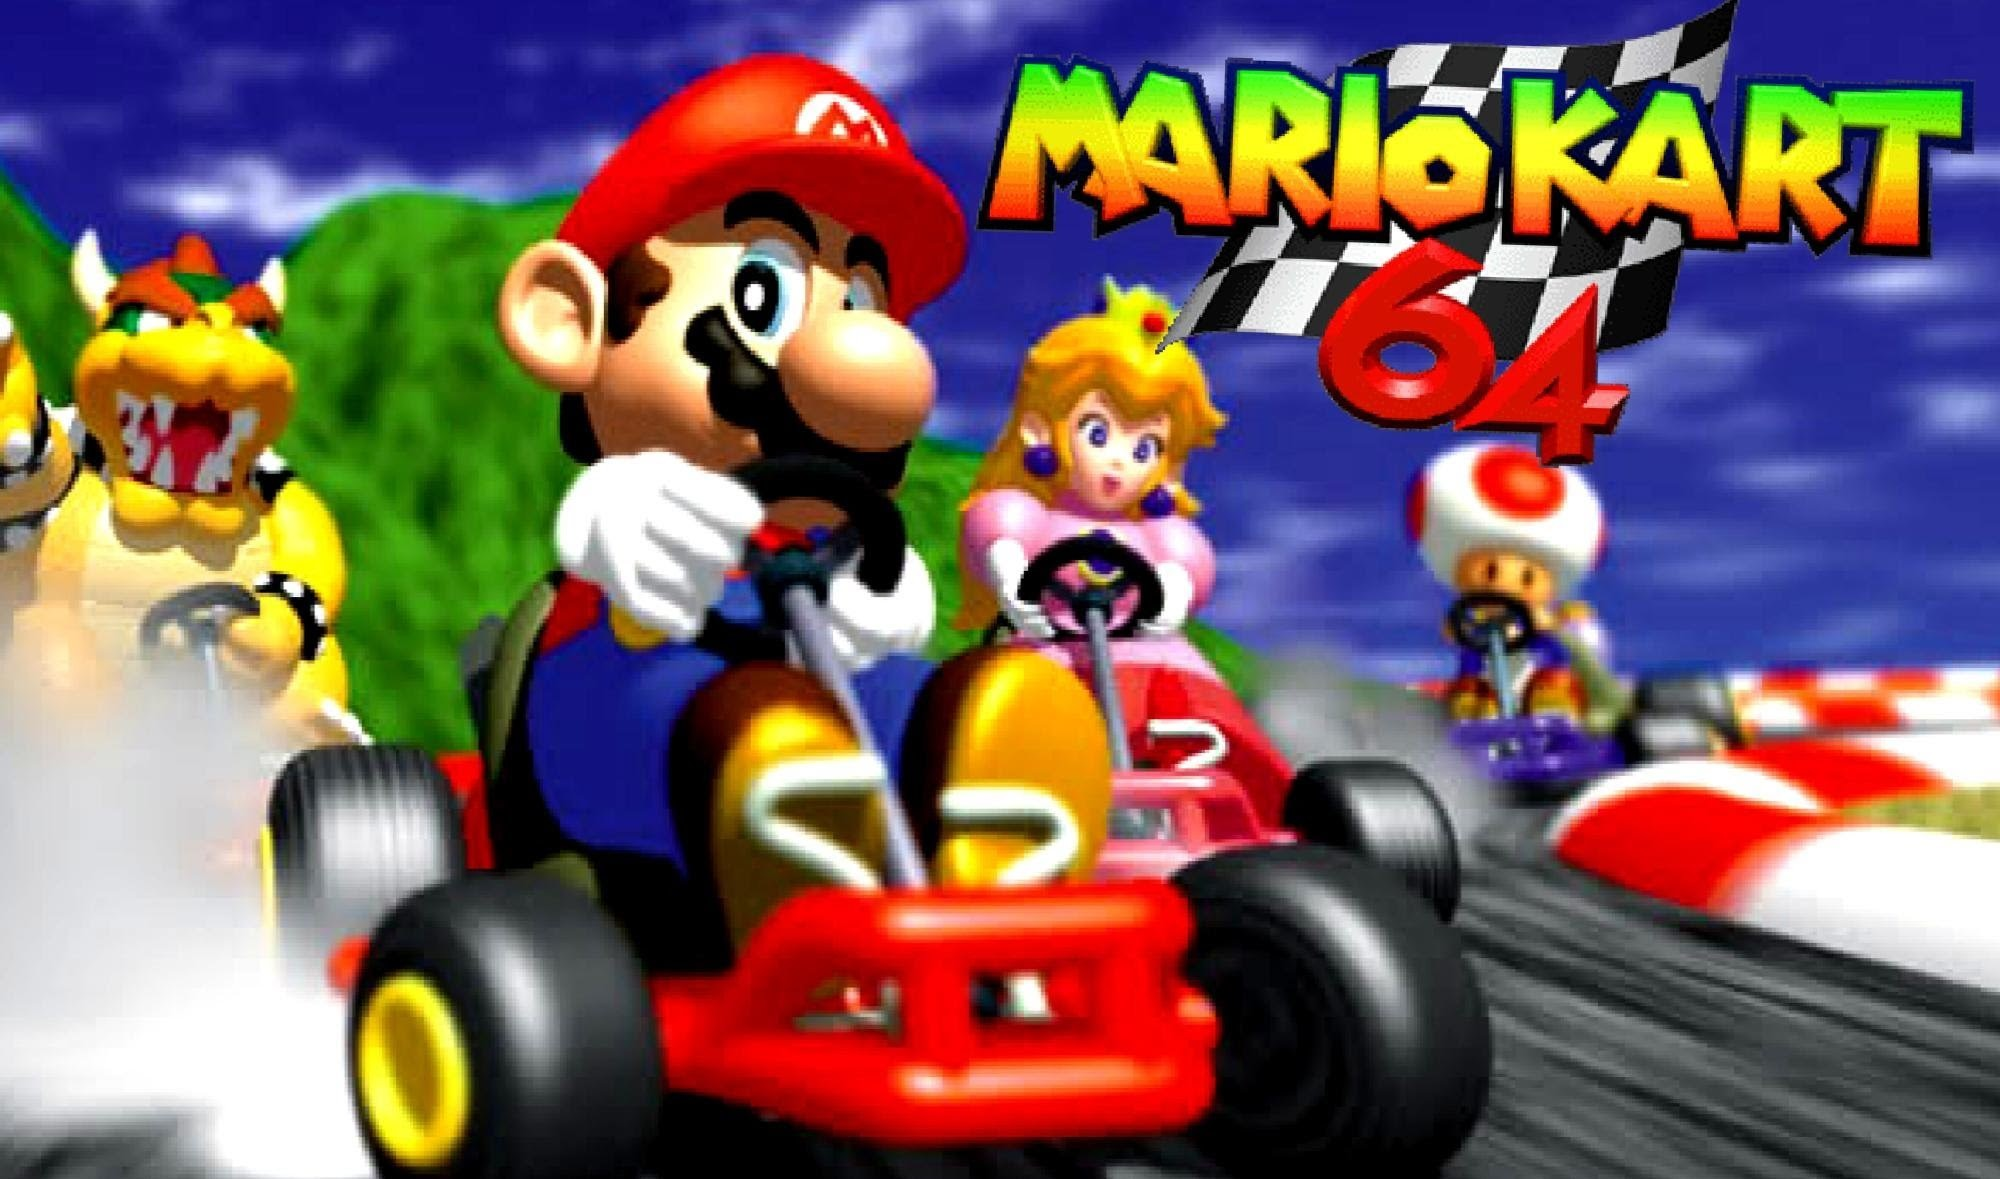 Nintendo 64 Classic Edition — 24 Games We Want to See on the System